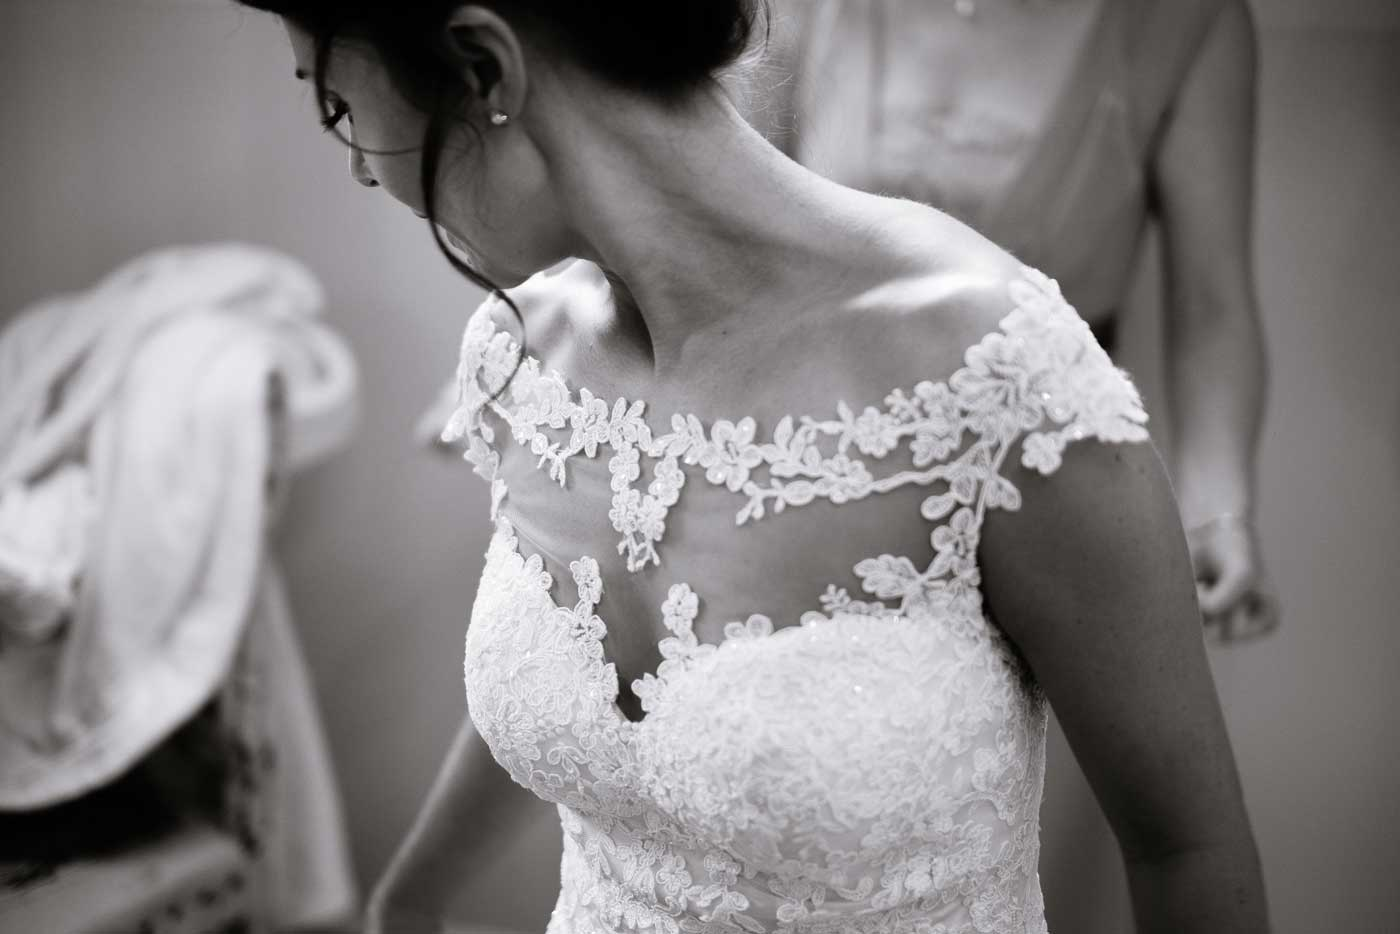 Detail on bride's dress